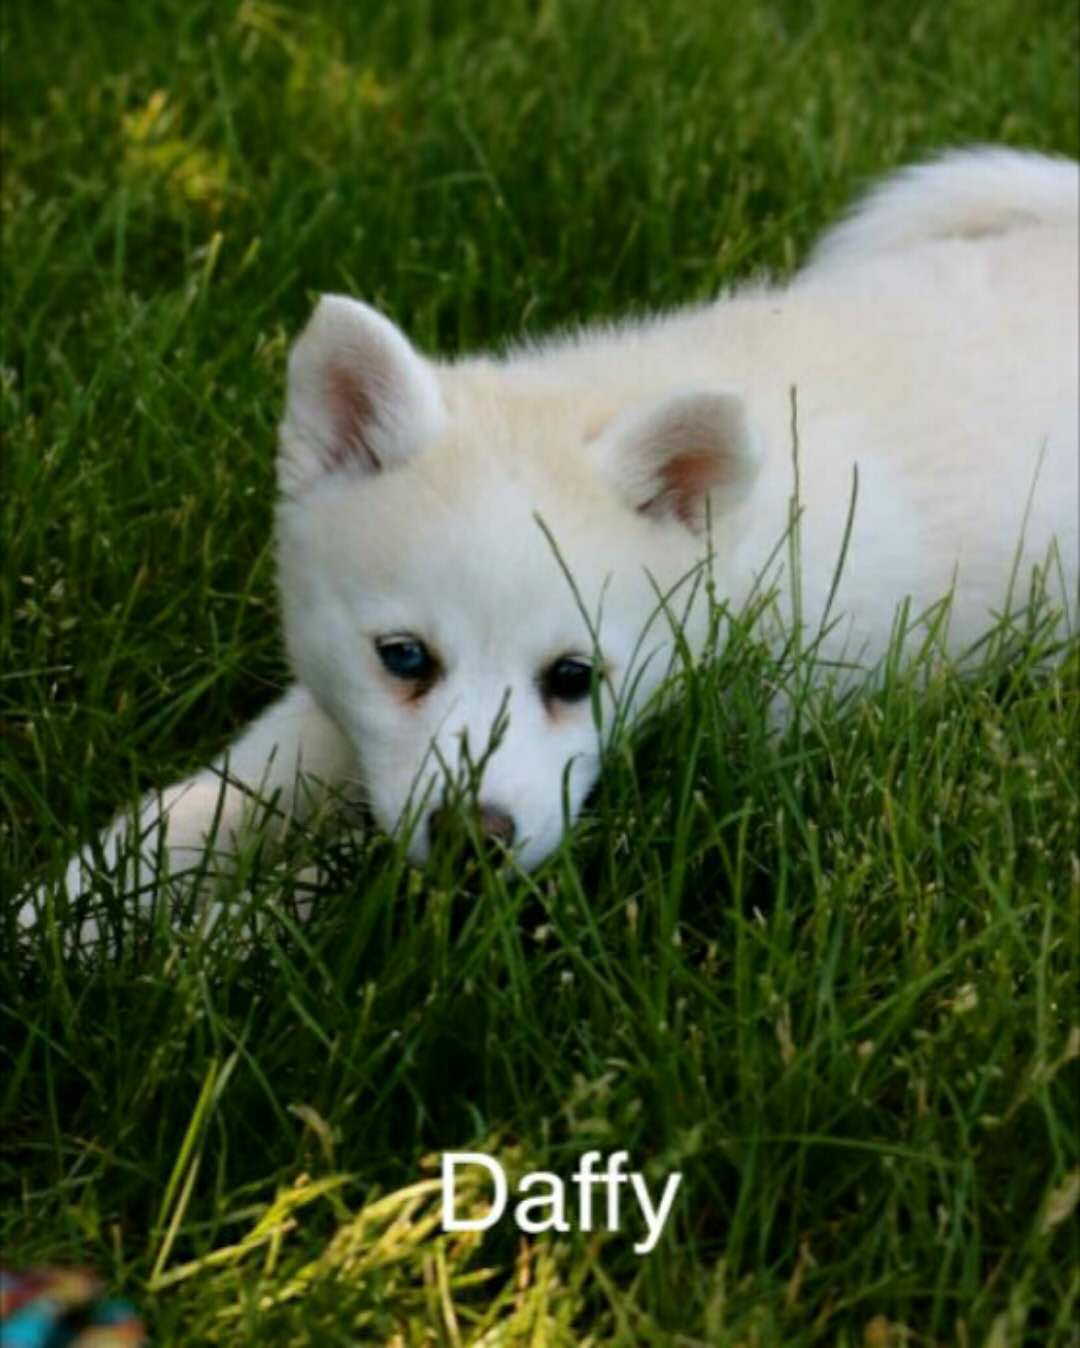 DAFFY *2 YEAR HEALTH GUARANTEE* – POMSKY PUPPY FOR SALE IN EATON, OH 5/30/2018